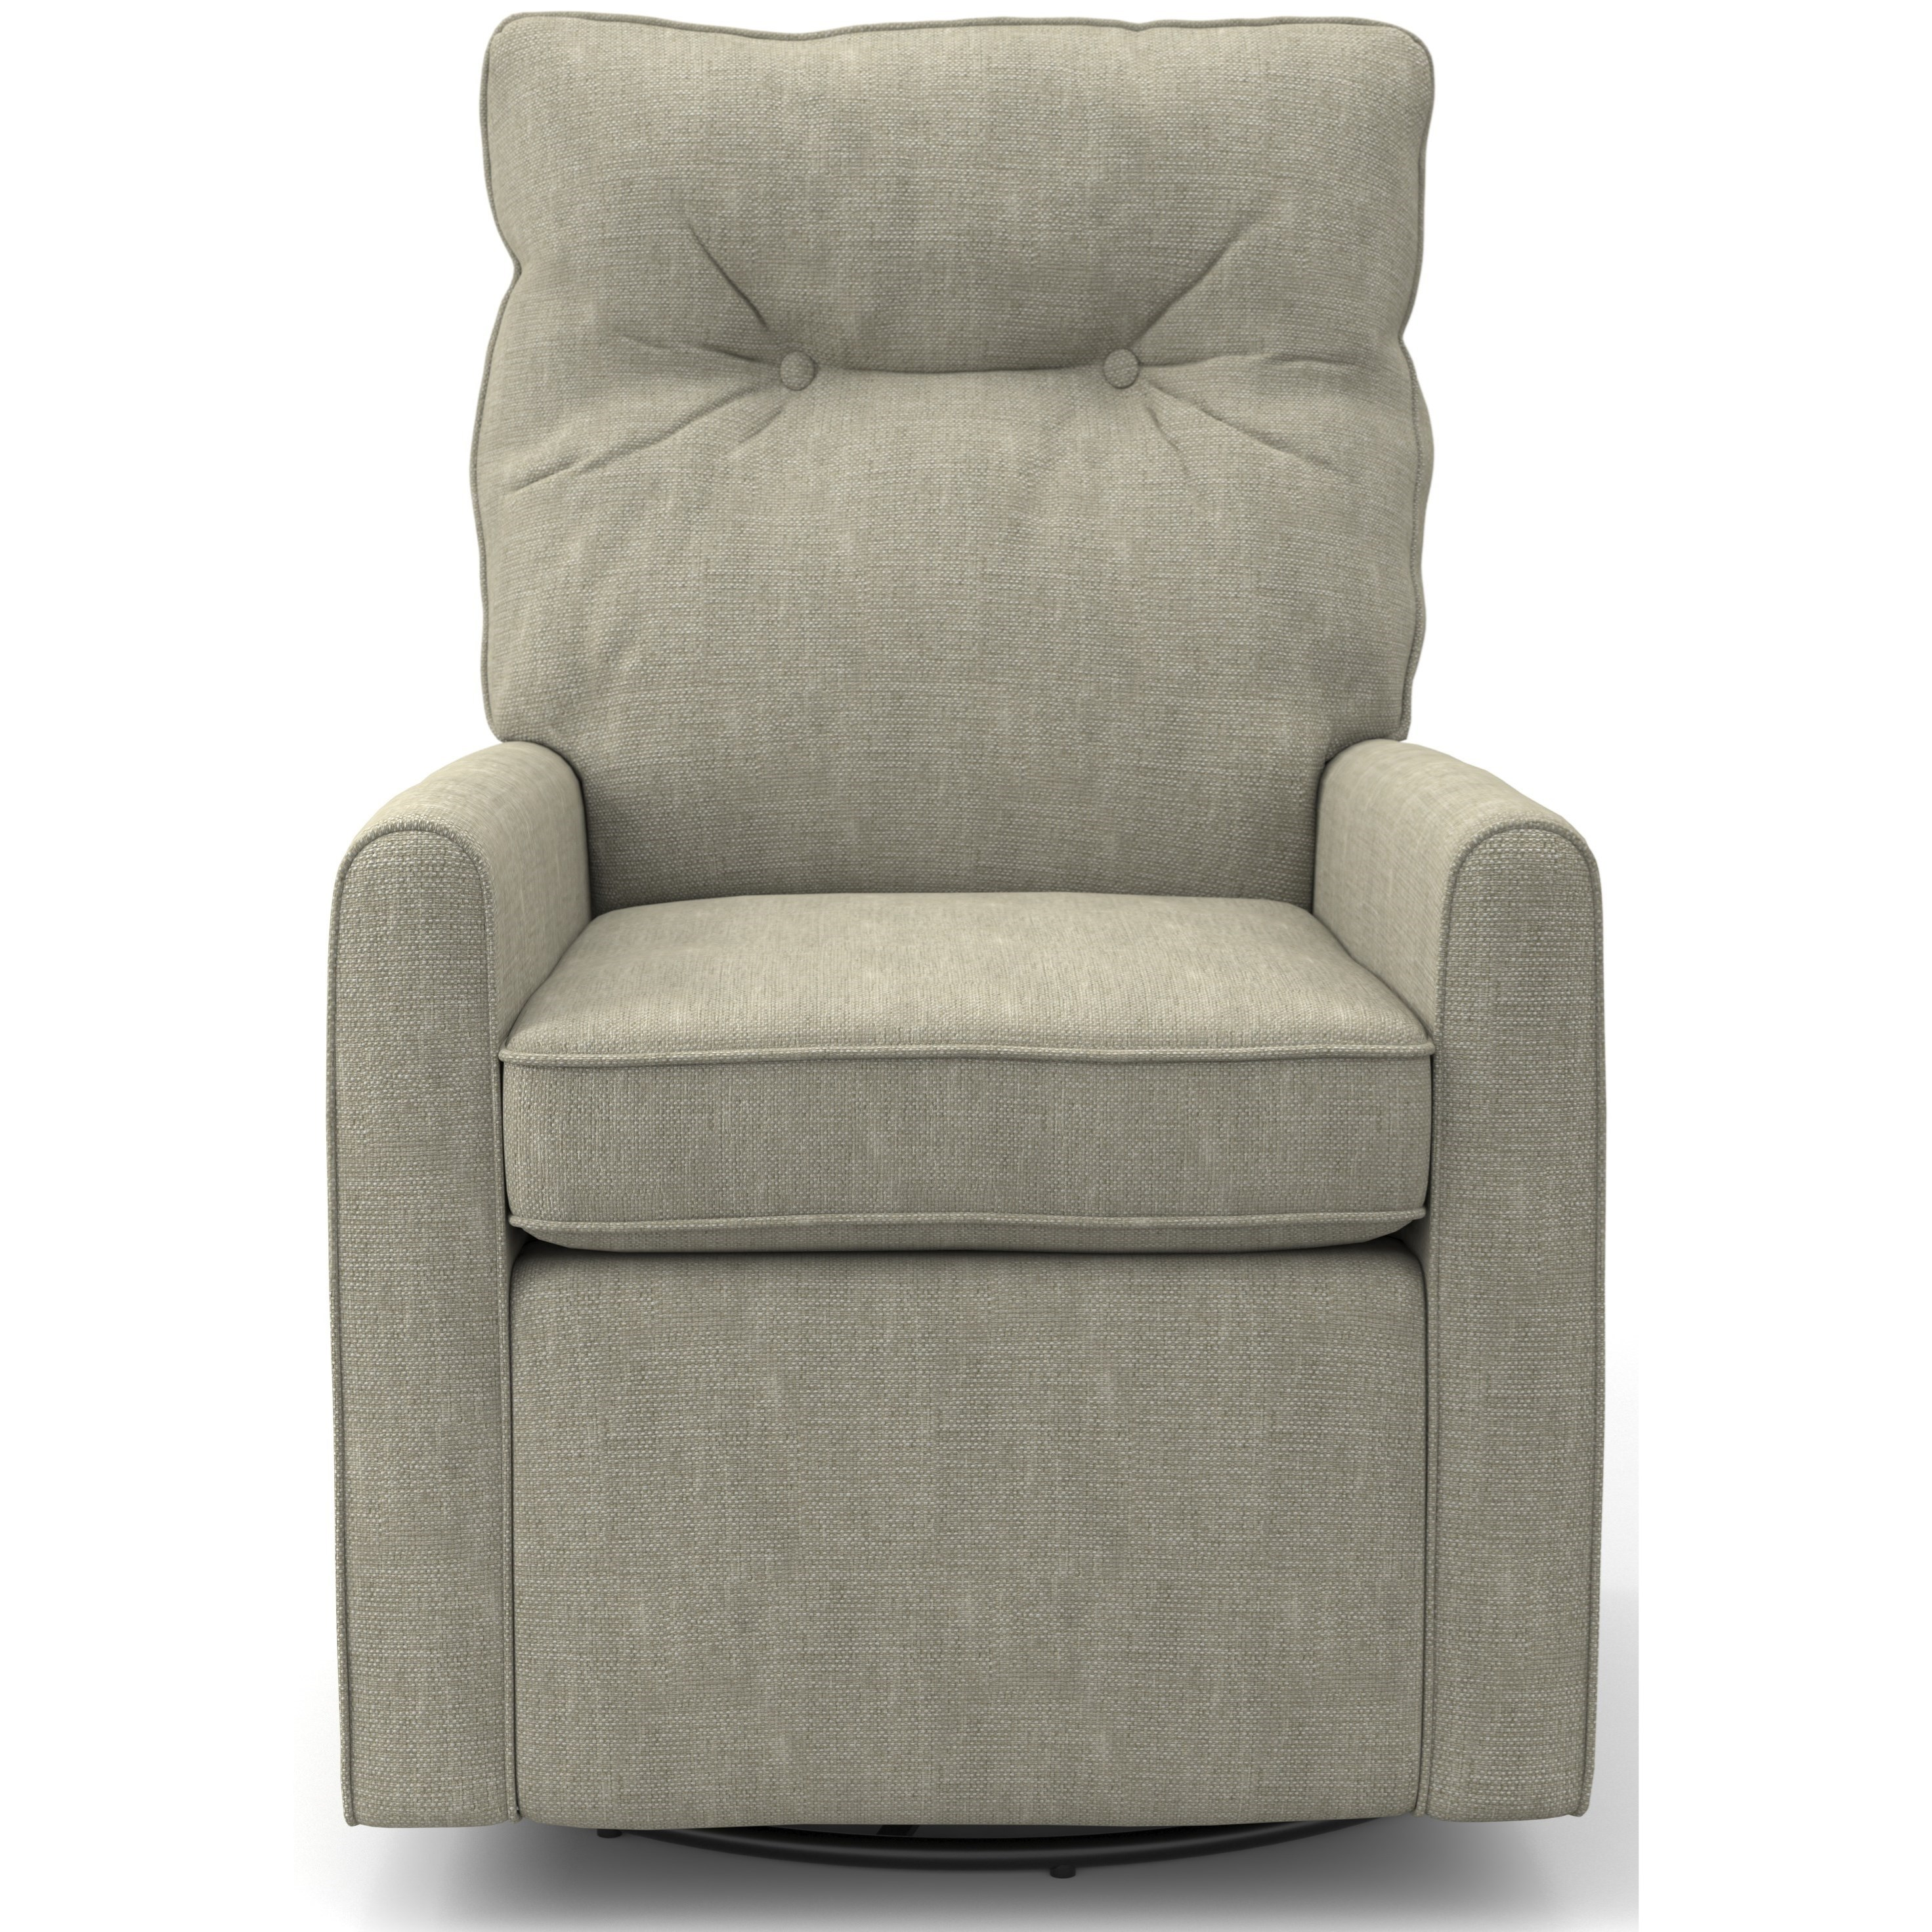 Best Xpress - Phylicia Swivel Glider Chair by Best Home Furnishings at Suburban Furniture